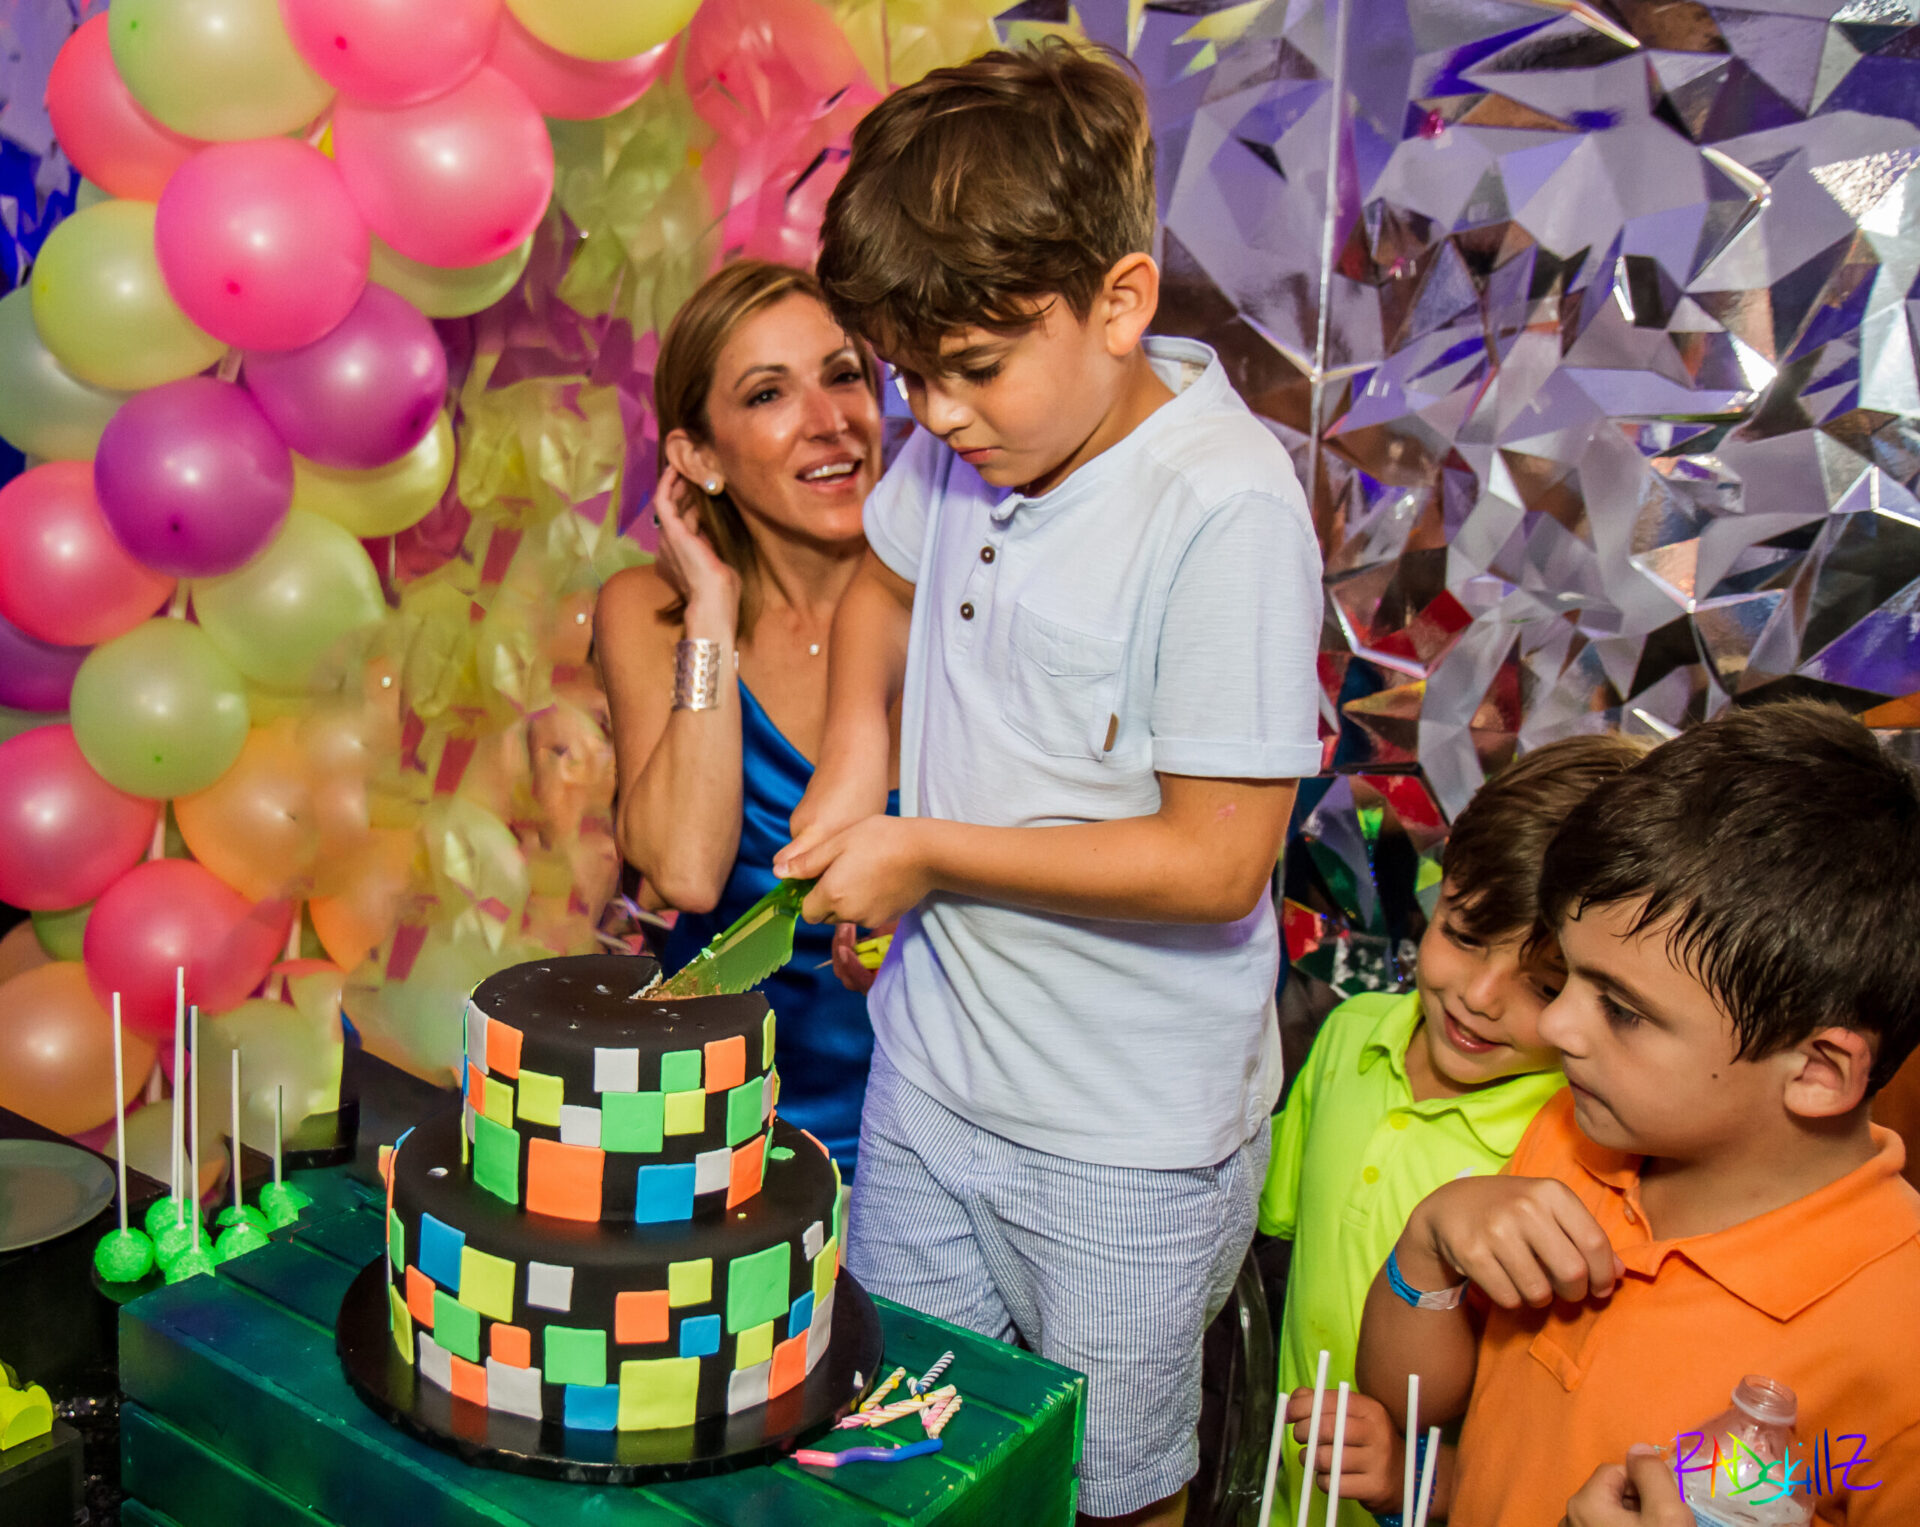 The Ultimate Dimension of Family Fun - Party Packages